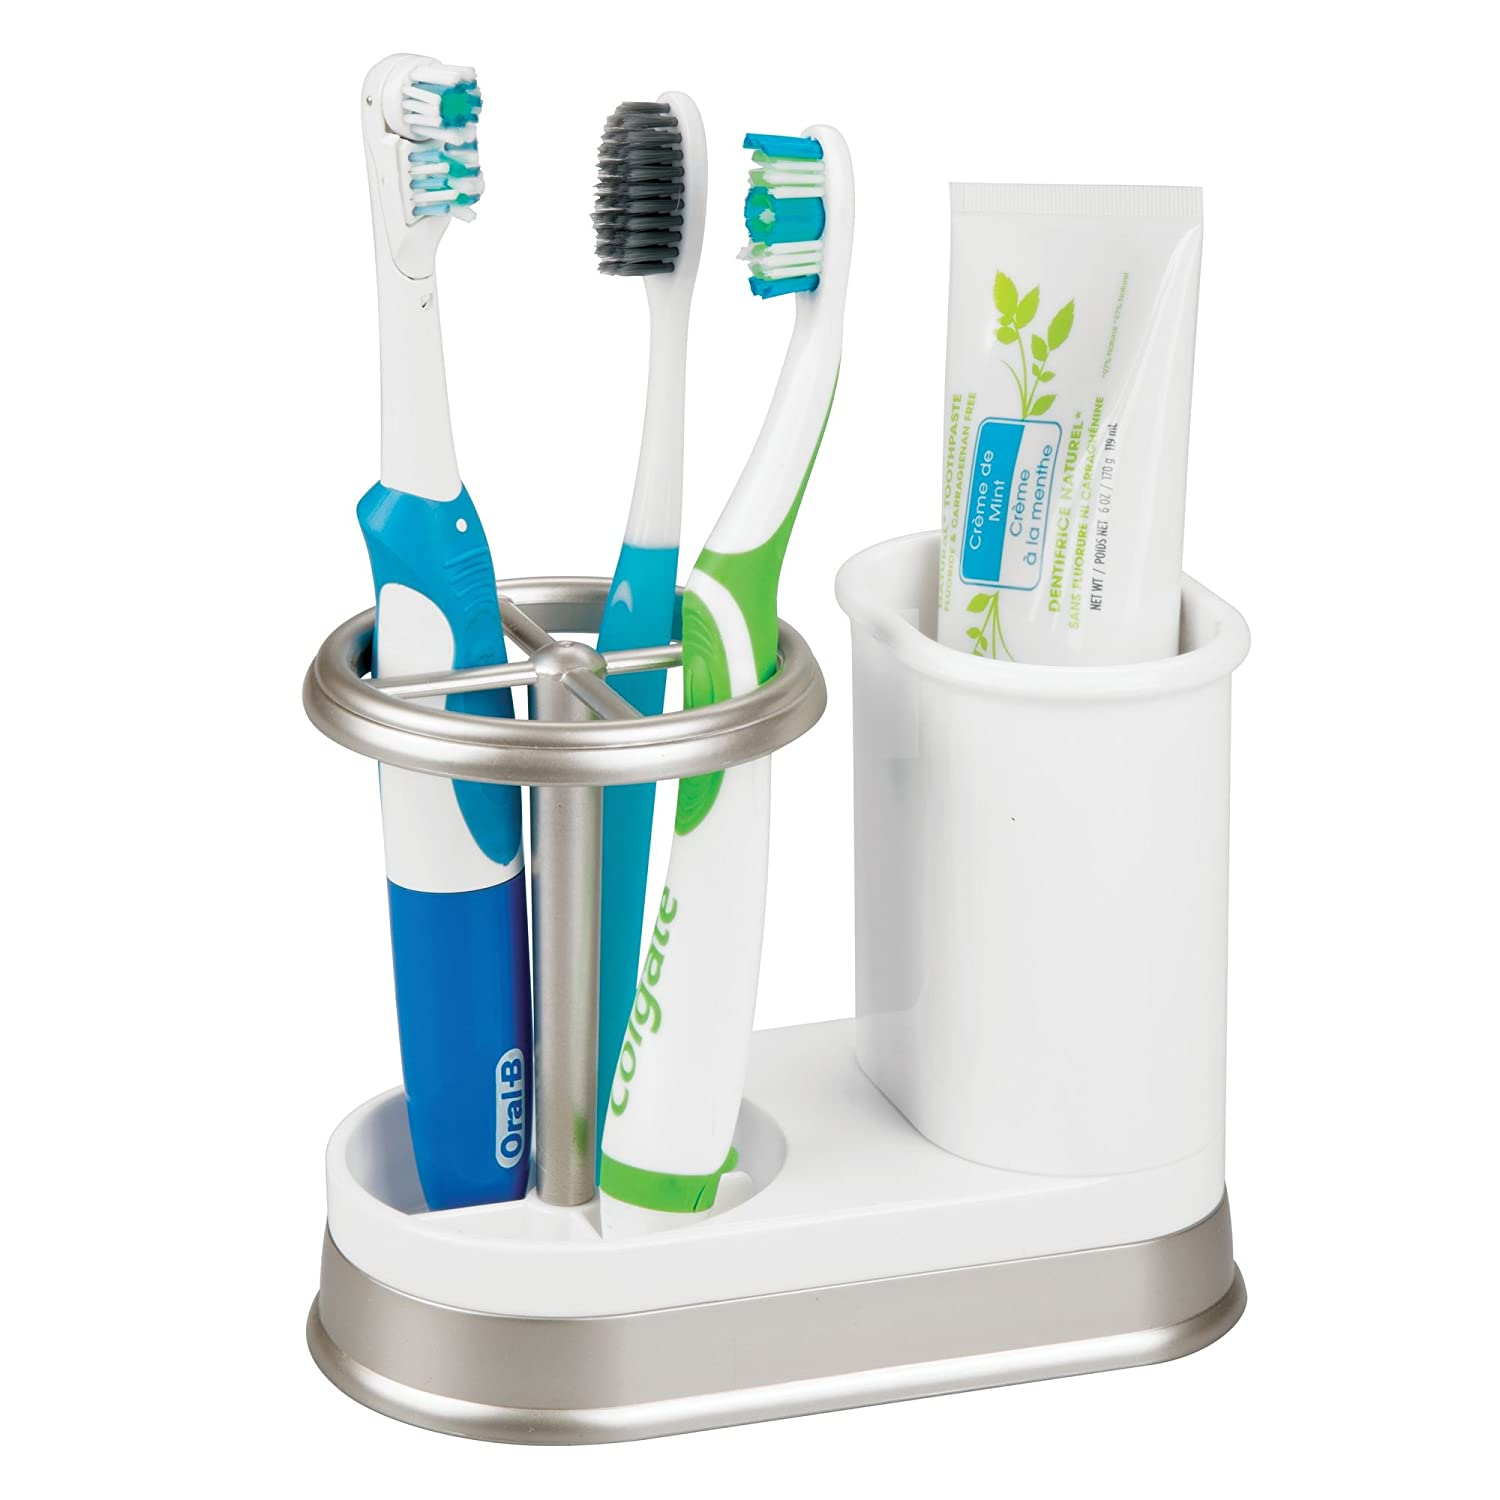 Amazon.com: mDesign Decorative Bathroom Dental Storage Organizer Holder Stand for Electric Spin Toothbrush/Toothpaste - Compact Design for Countertop and ...